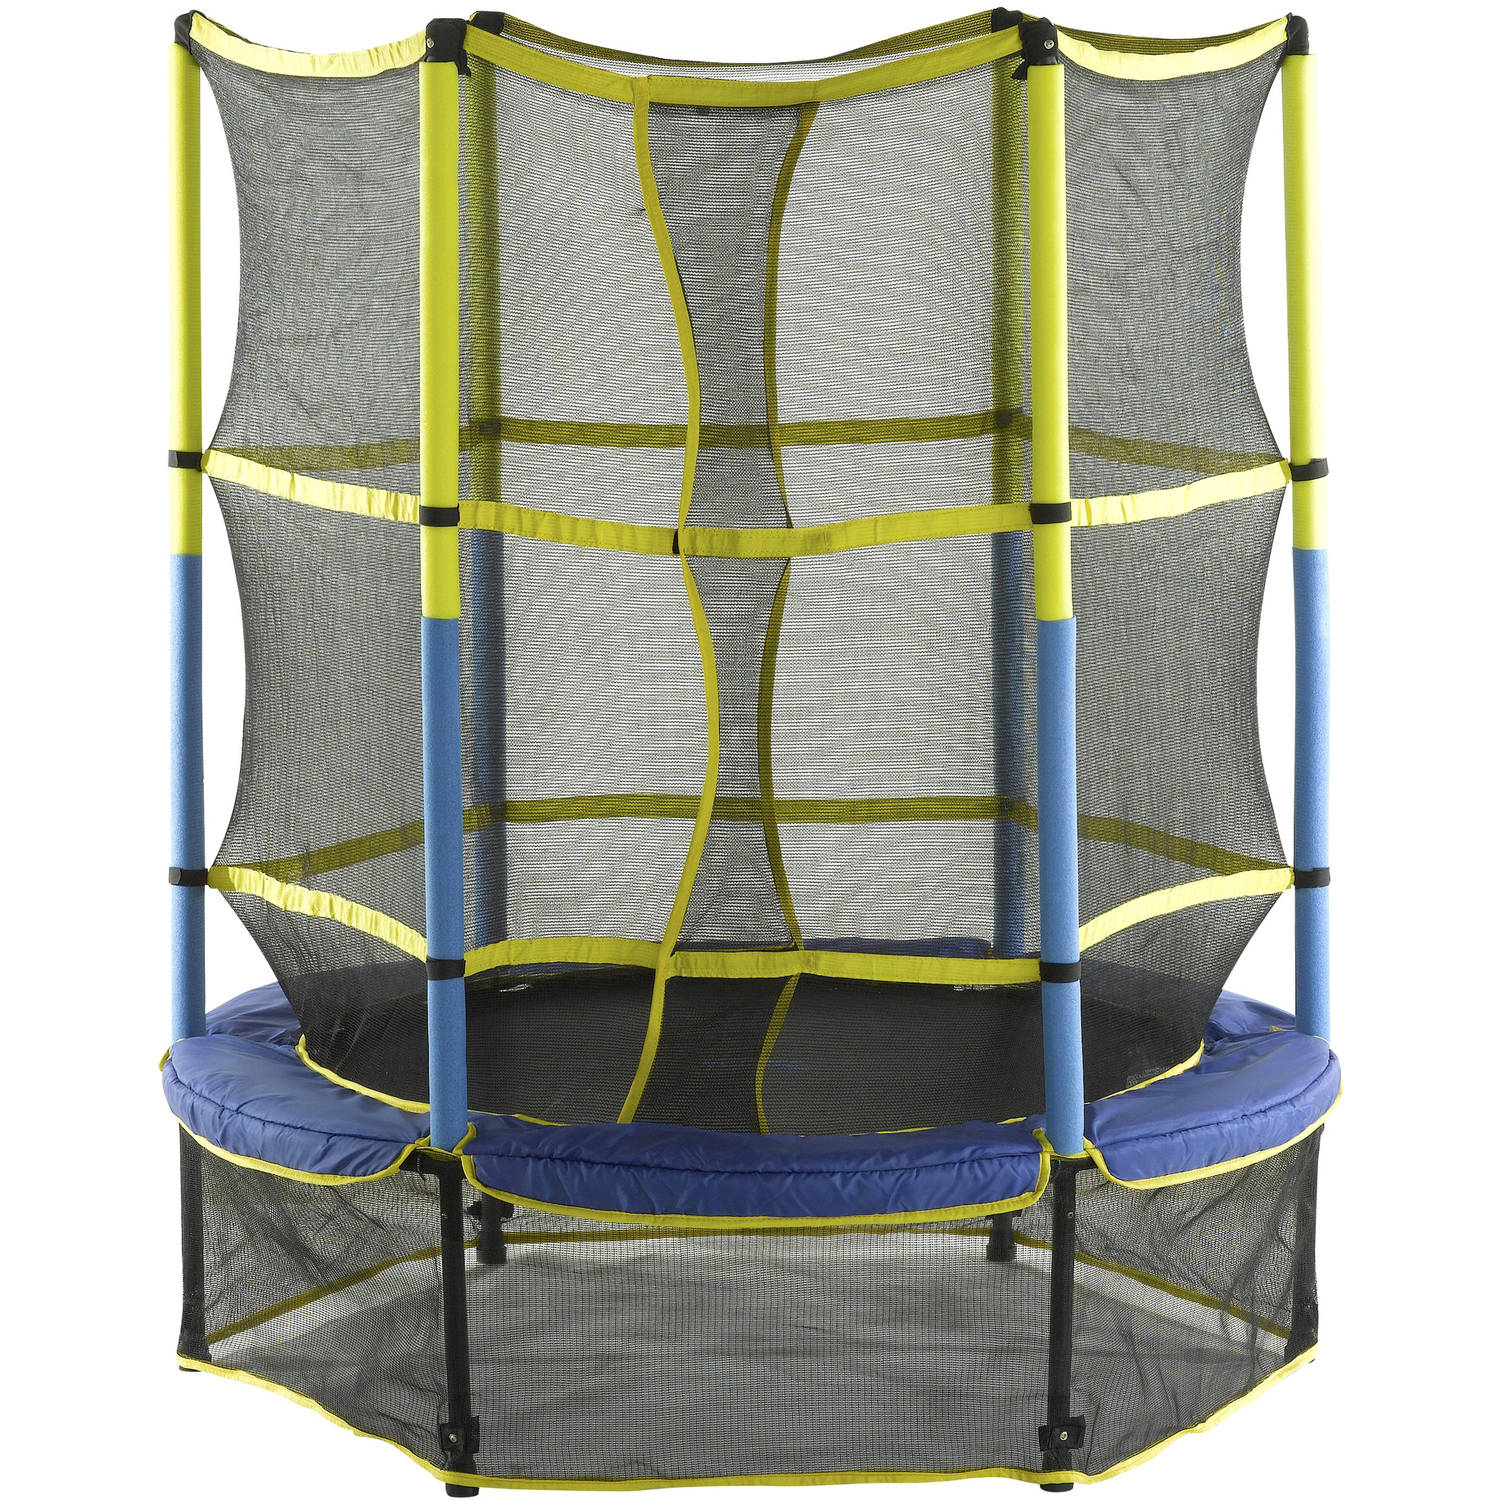 "Upper Bounce 55"" Kid-Friendly Trampoline and Enclosure Set with New Easy Assemble Feature"